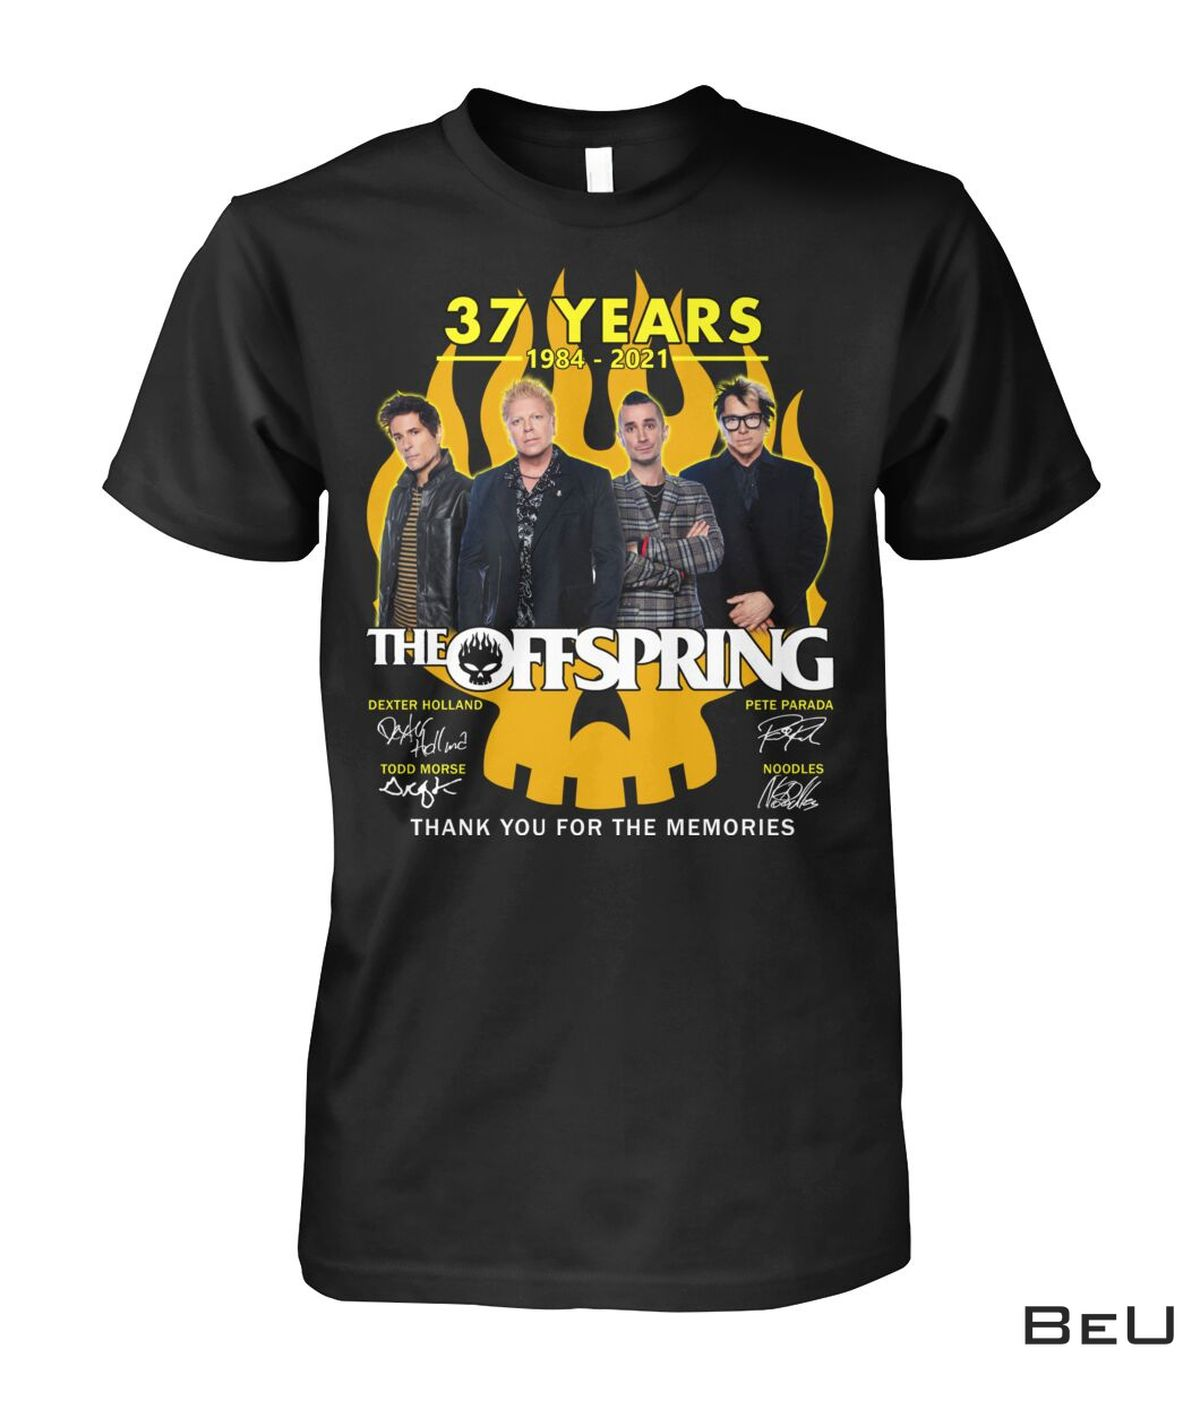 The Offspring 37 Years Thank You For The Memories Shirt, hoodie